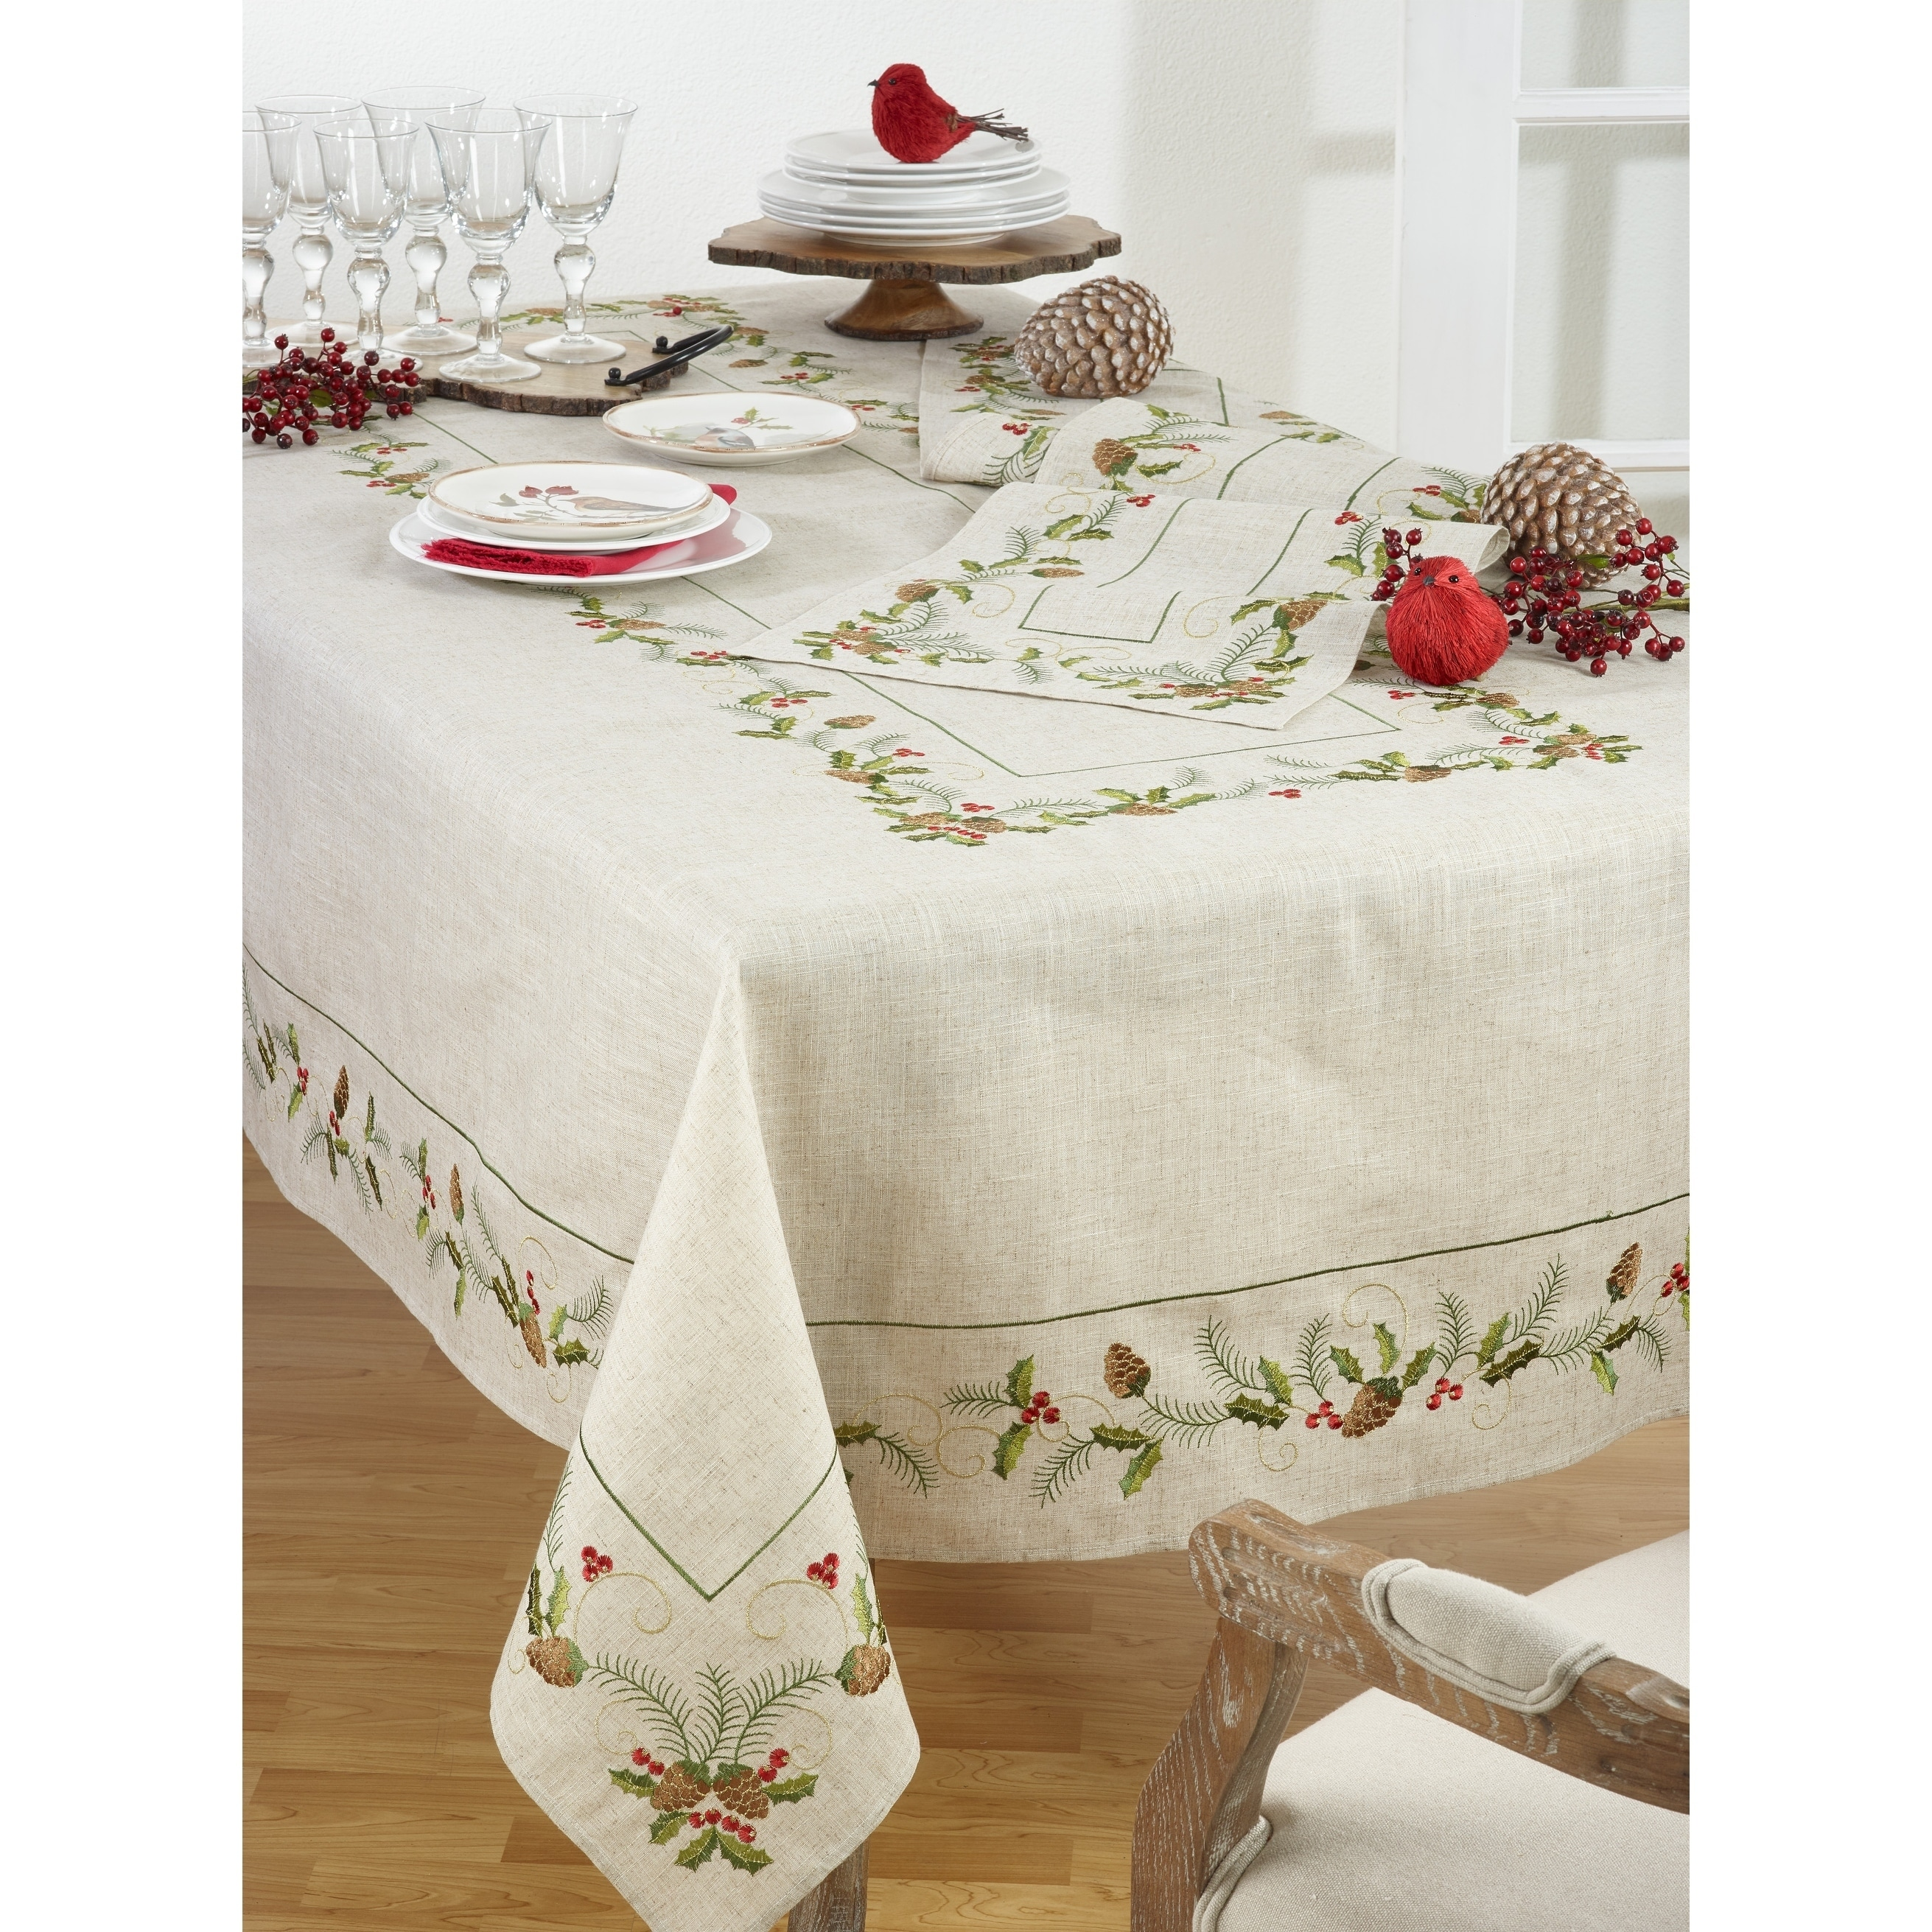 Shop Christmas Tablecloth With Beautiful Pinecone And Holly Print